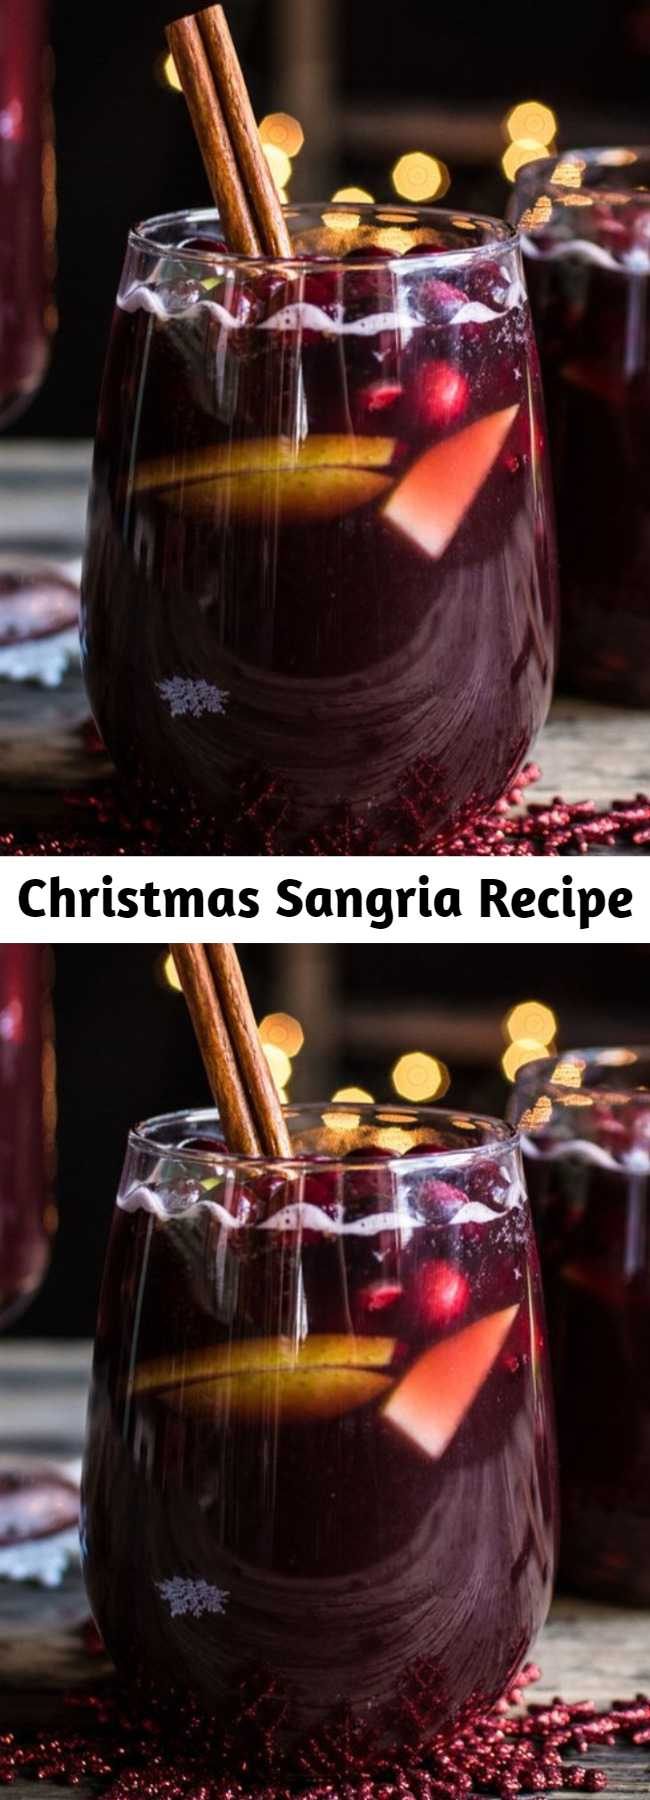 Easy Christmas Sangria Recipe - No holiday party is complete without a festive drink, and this wintry sangria is just what your guests need to stay holly and jolly. Plus, it can be prepared ahead of time so you can focus on getting the rest of the party set up—now that's what we call a Christmas miracle! It's easy and festive!